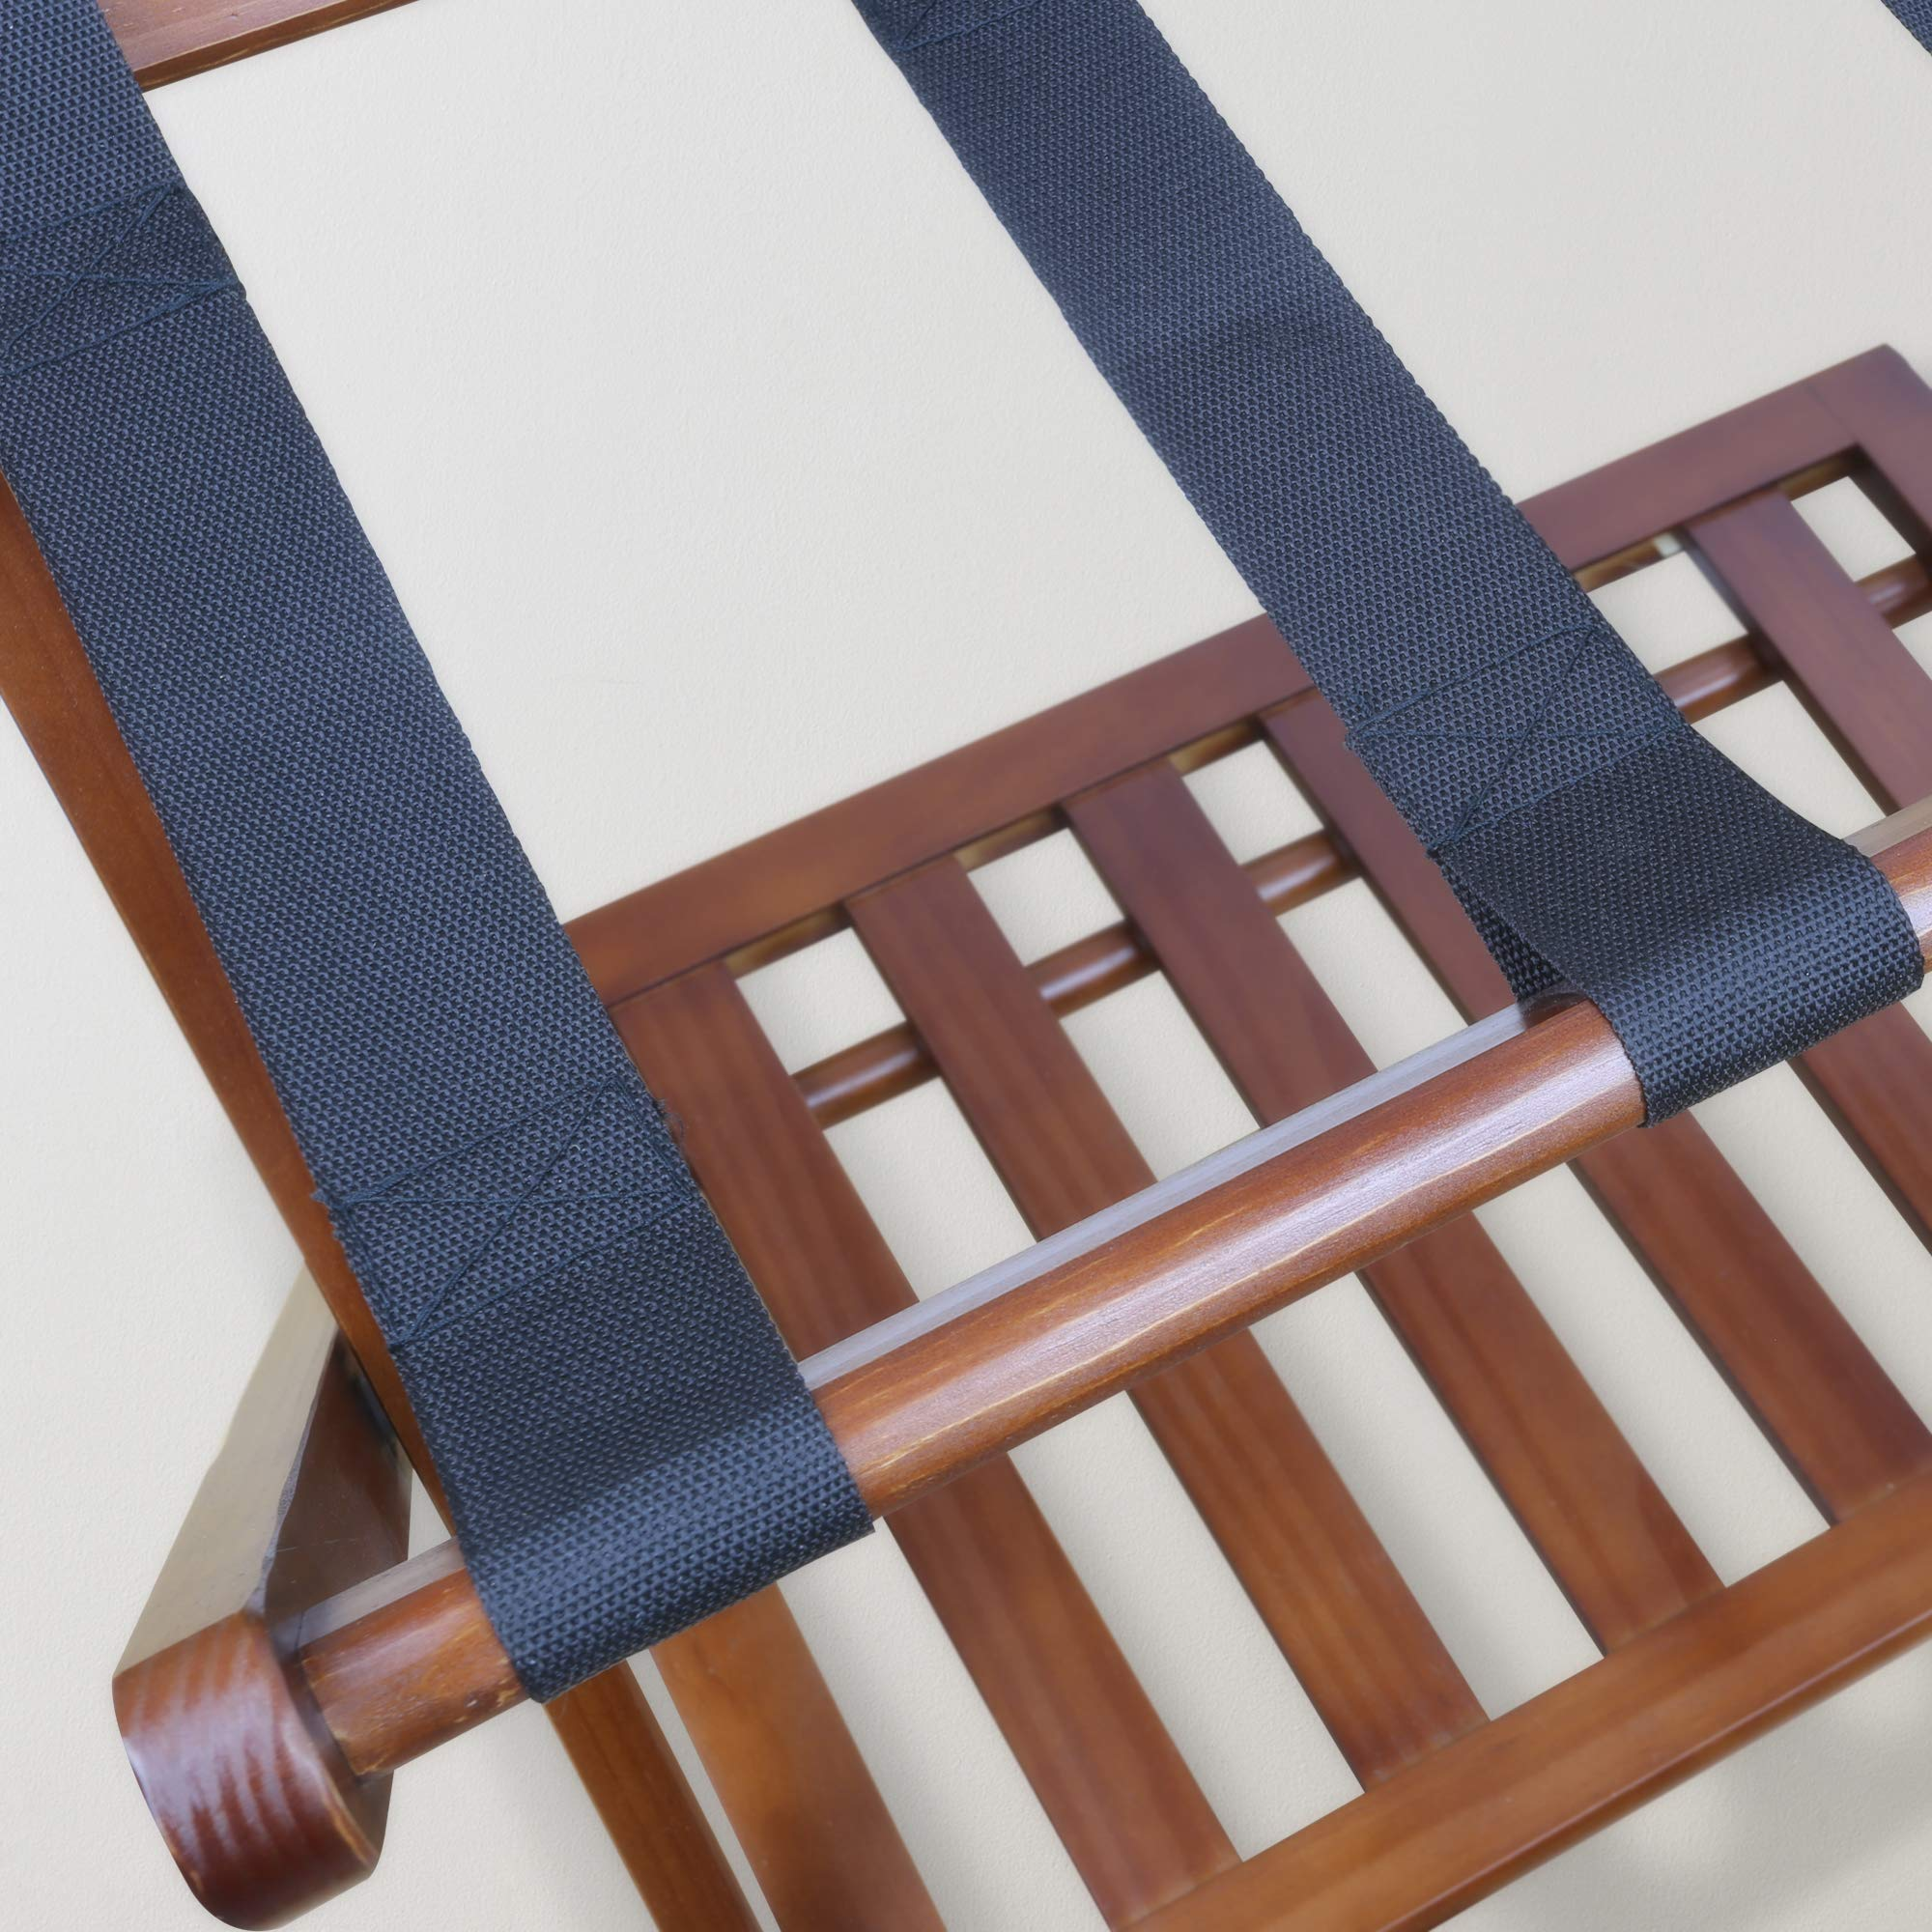 Casual Home Luggage Rack with Shelf by Casual Home (Image #12)